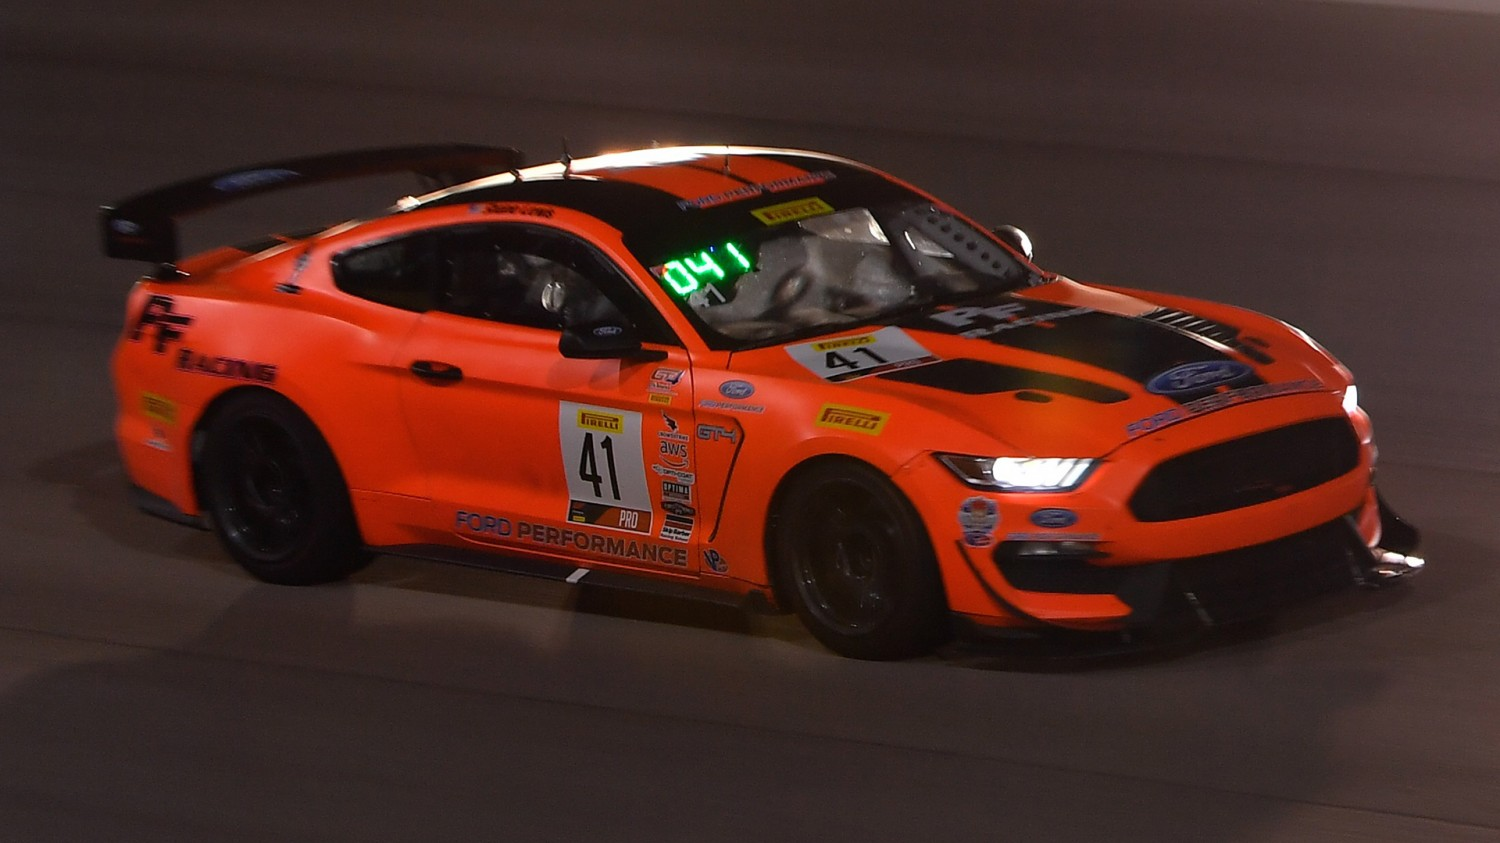 Shane Lewis Leads Pirelli GT4 America Field For Opening Practice Session At LVMS